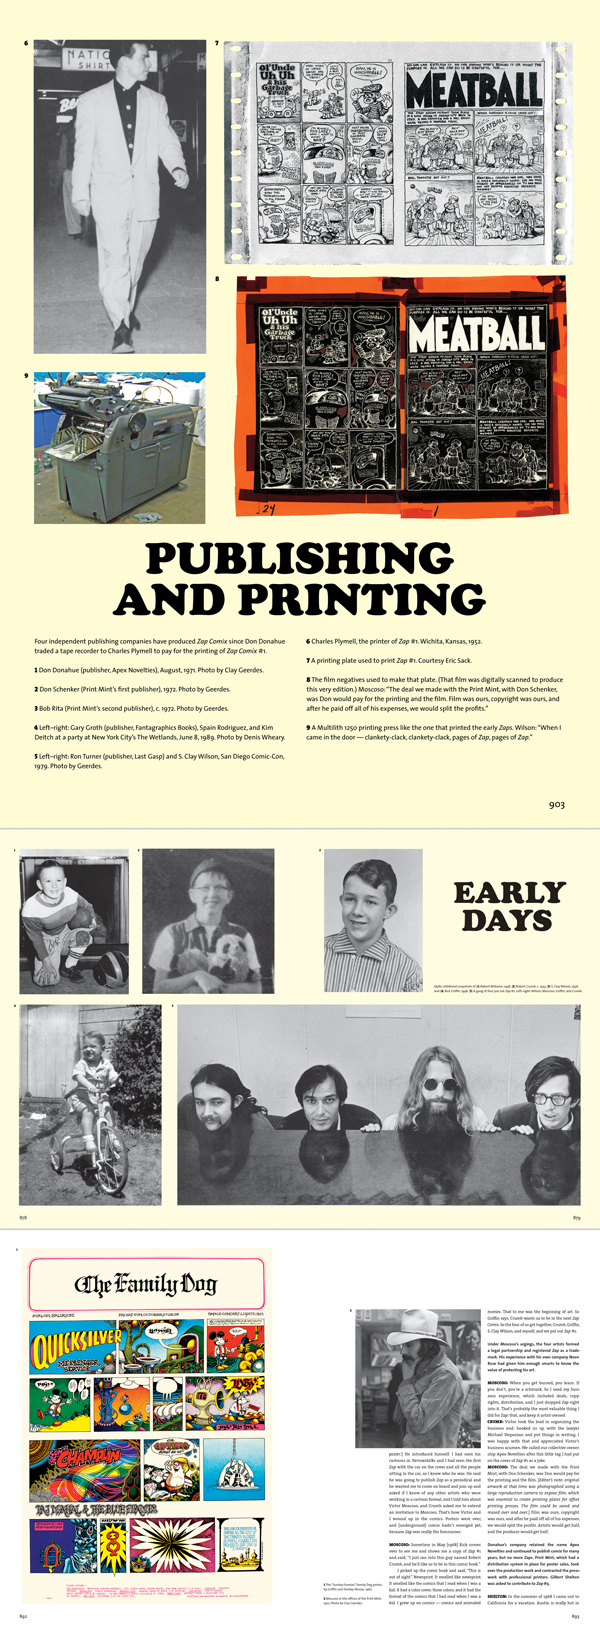 """At SDCC, practically all the major comics publishers have one-hour panels in which they show exclusive previews of upcoming releases as well as booths on the exhibition floor where you can learn more details. Fantagraphics' big announcements was for its long-awaited """"Complete Zap Comics,"""" a five-volume, 22-pound boxed set with bonus features such as an all-new issue – cover above – and an oral history."""